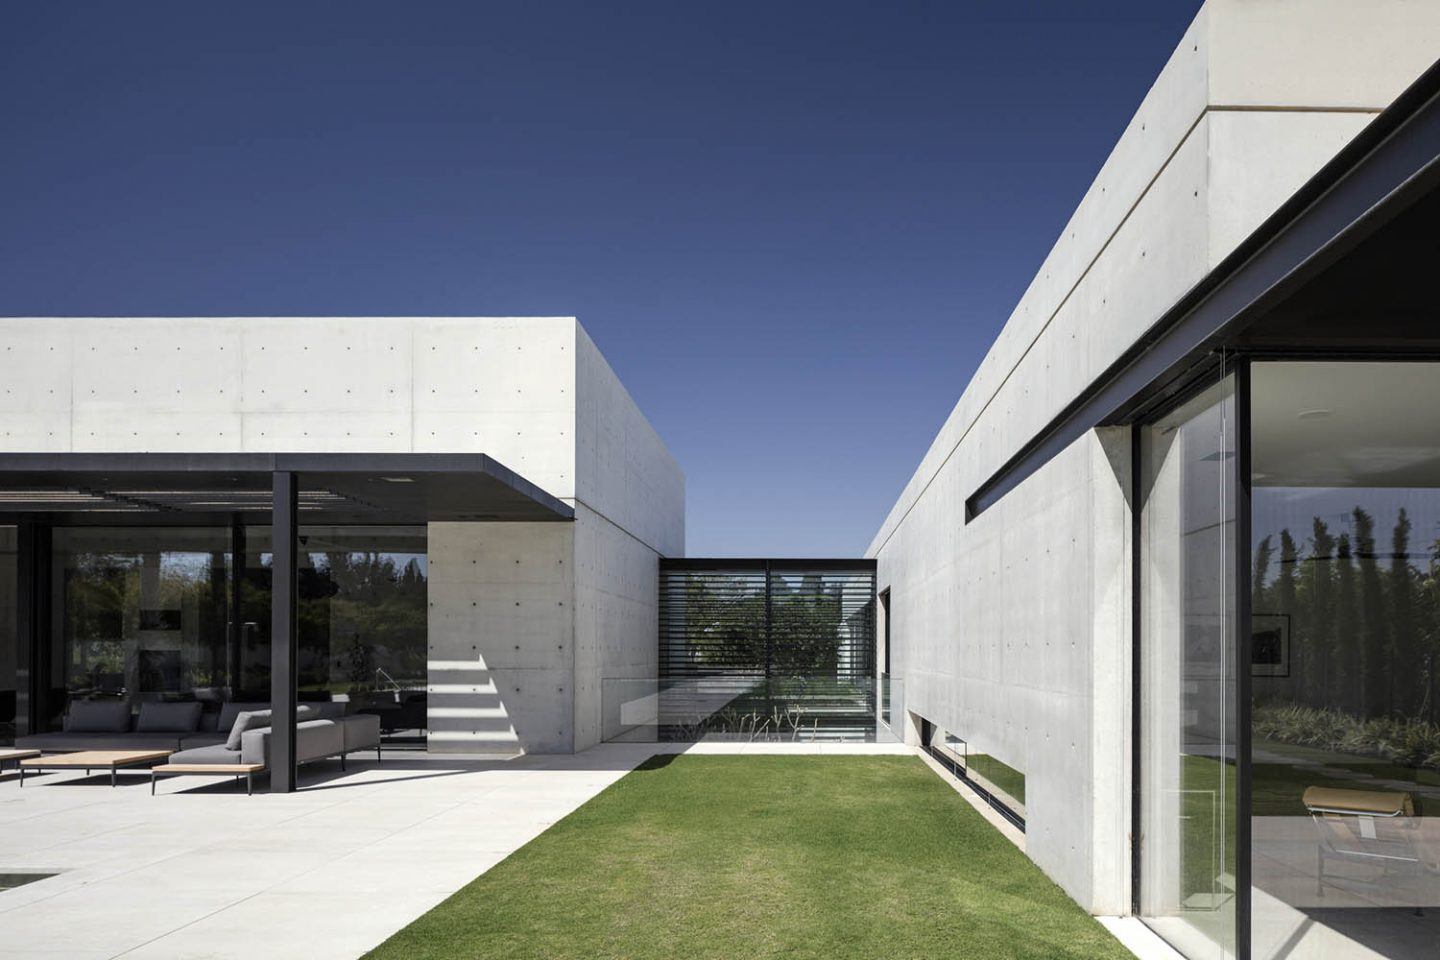 iGNANT_Architecture_House_In_Rishpon_Studio_De_Lange_12